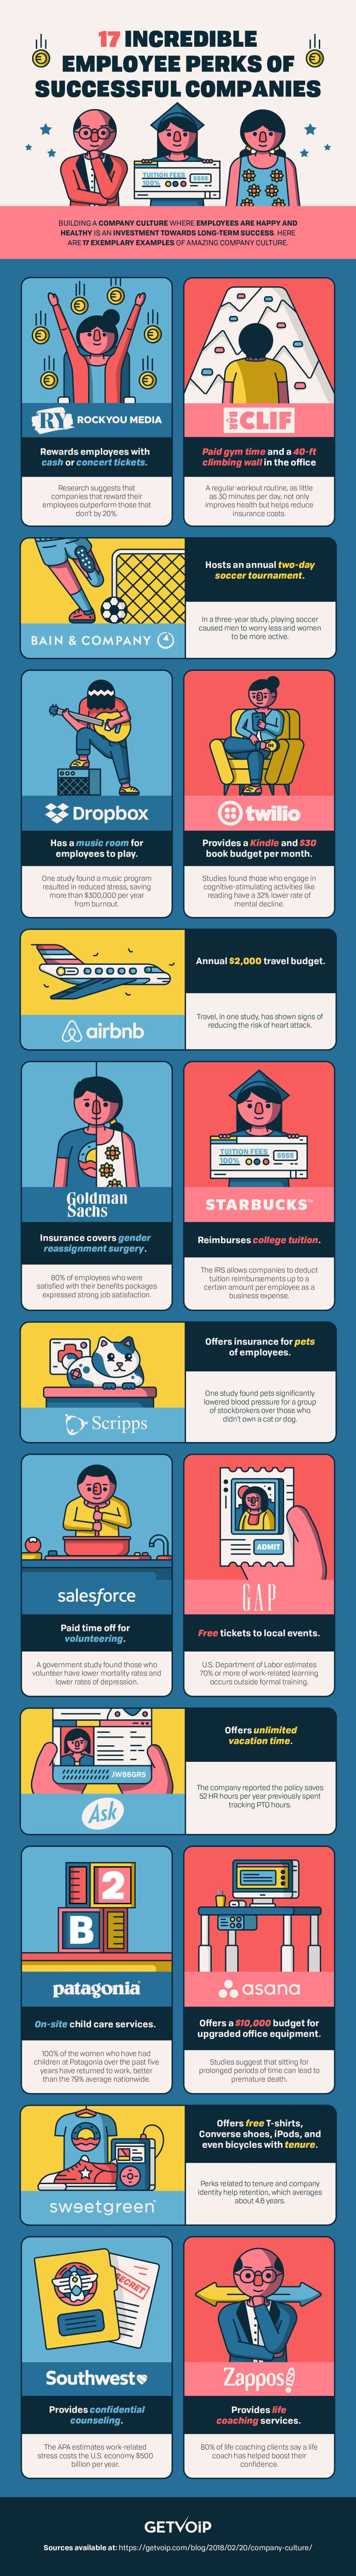 It's the Small Things That Make a Difference: Amazing Employee Perk Ideas of Successful Companies - Infographic